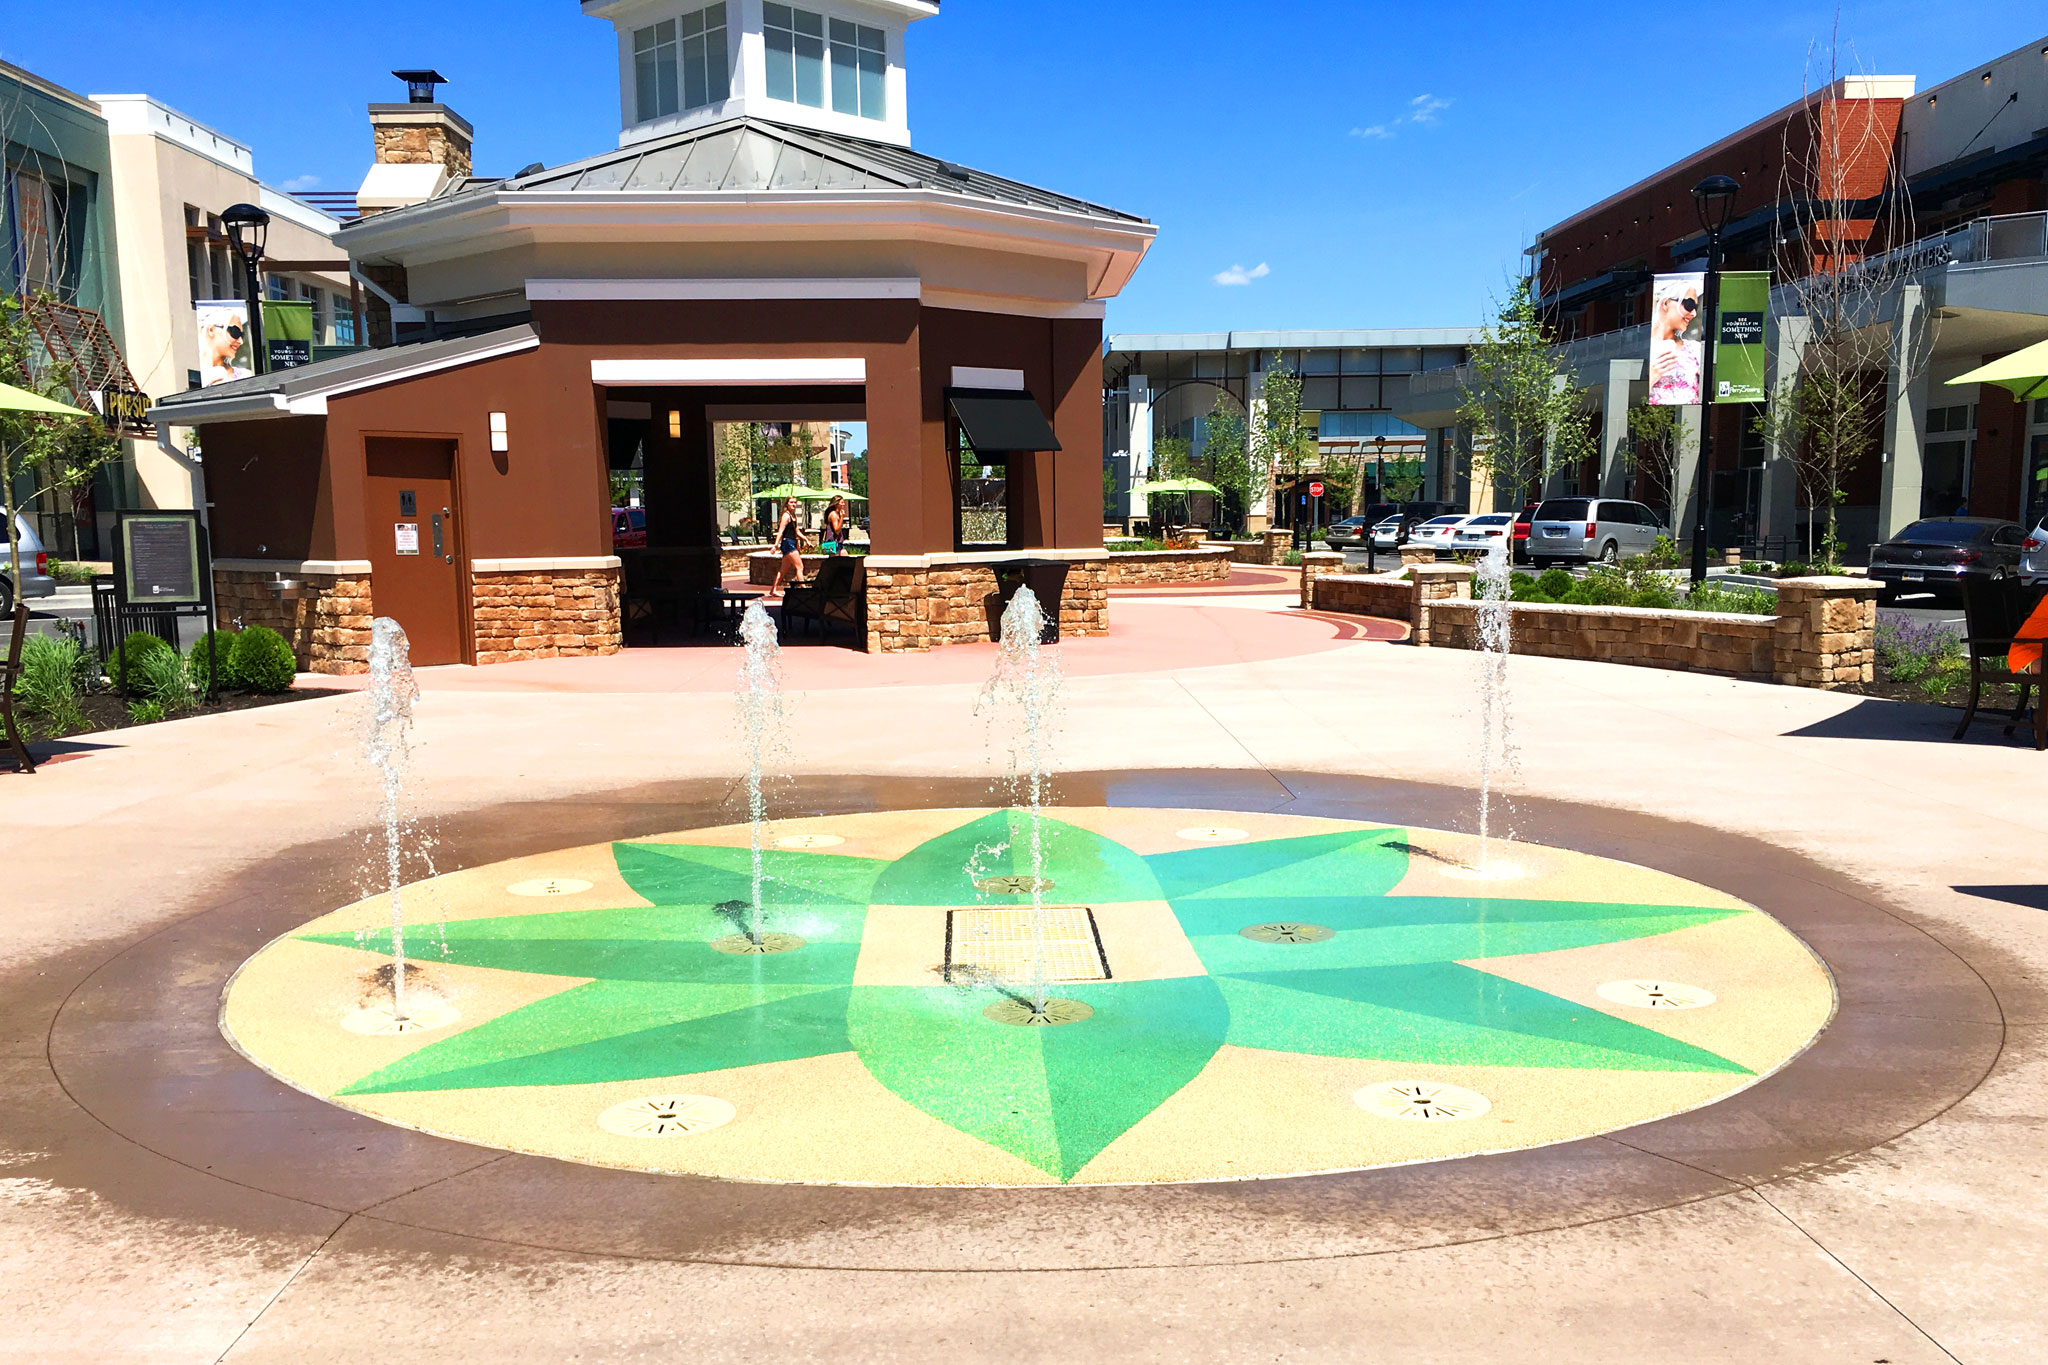 Interactive Water Feature At Retail Outlet Delta Fountains